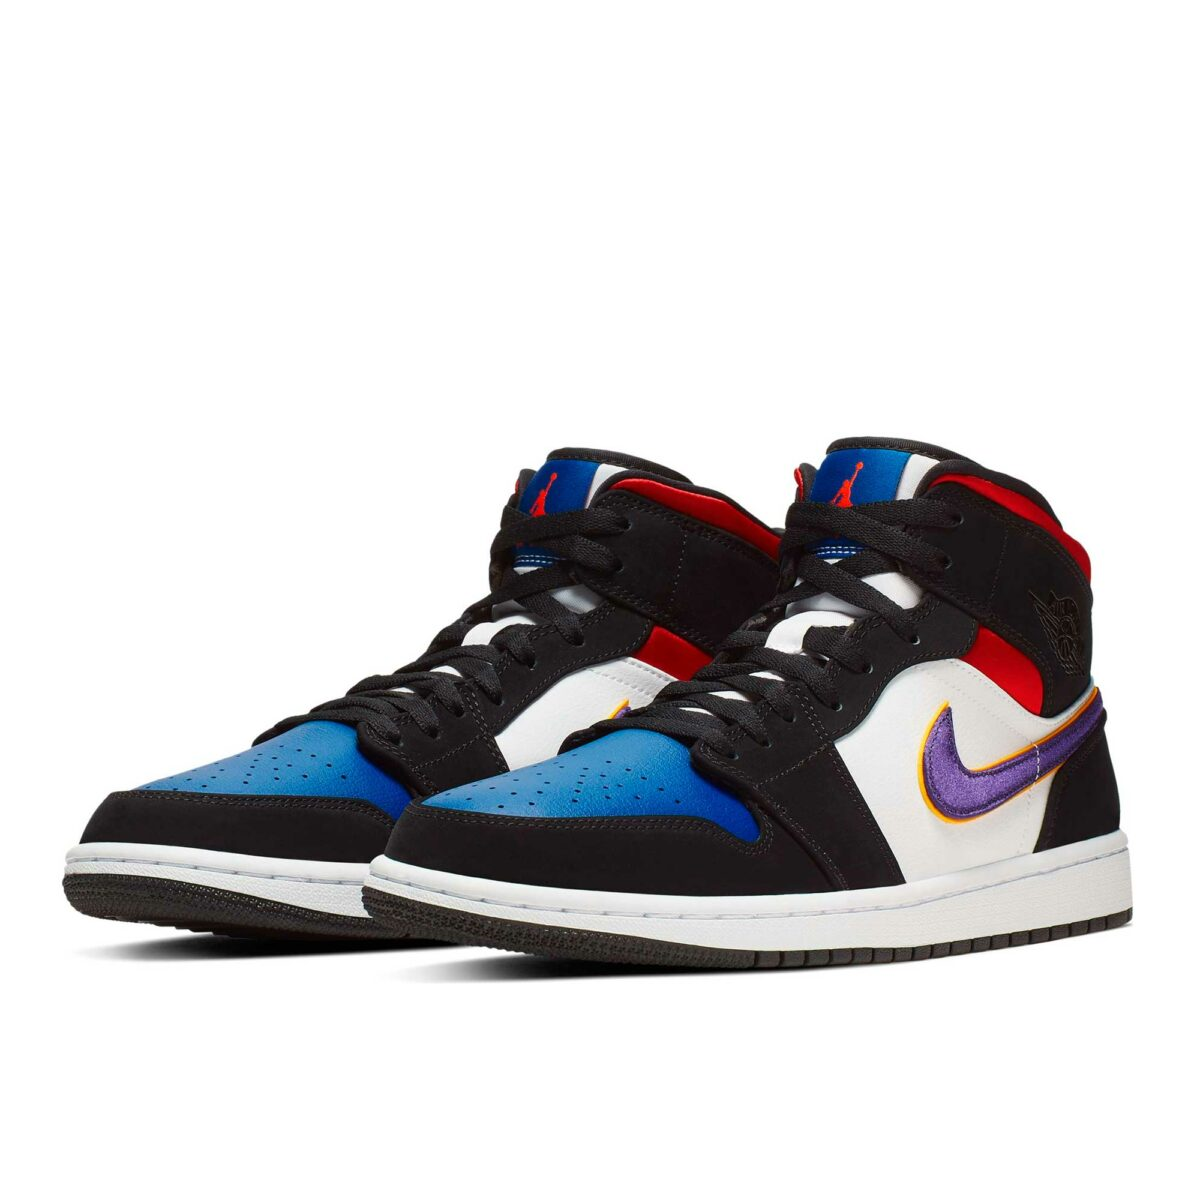 nike air Jordan 1 mid rivals 852542_005 купить